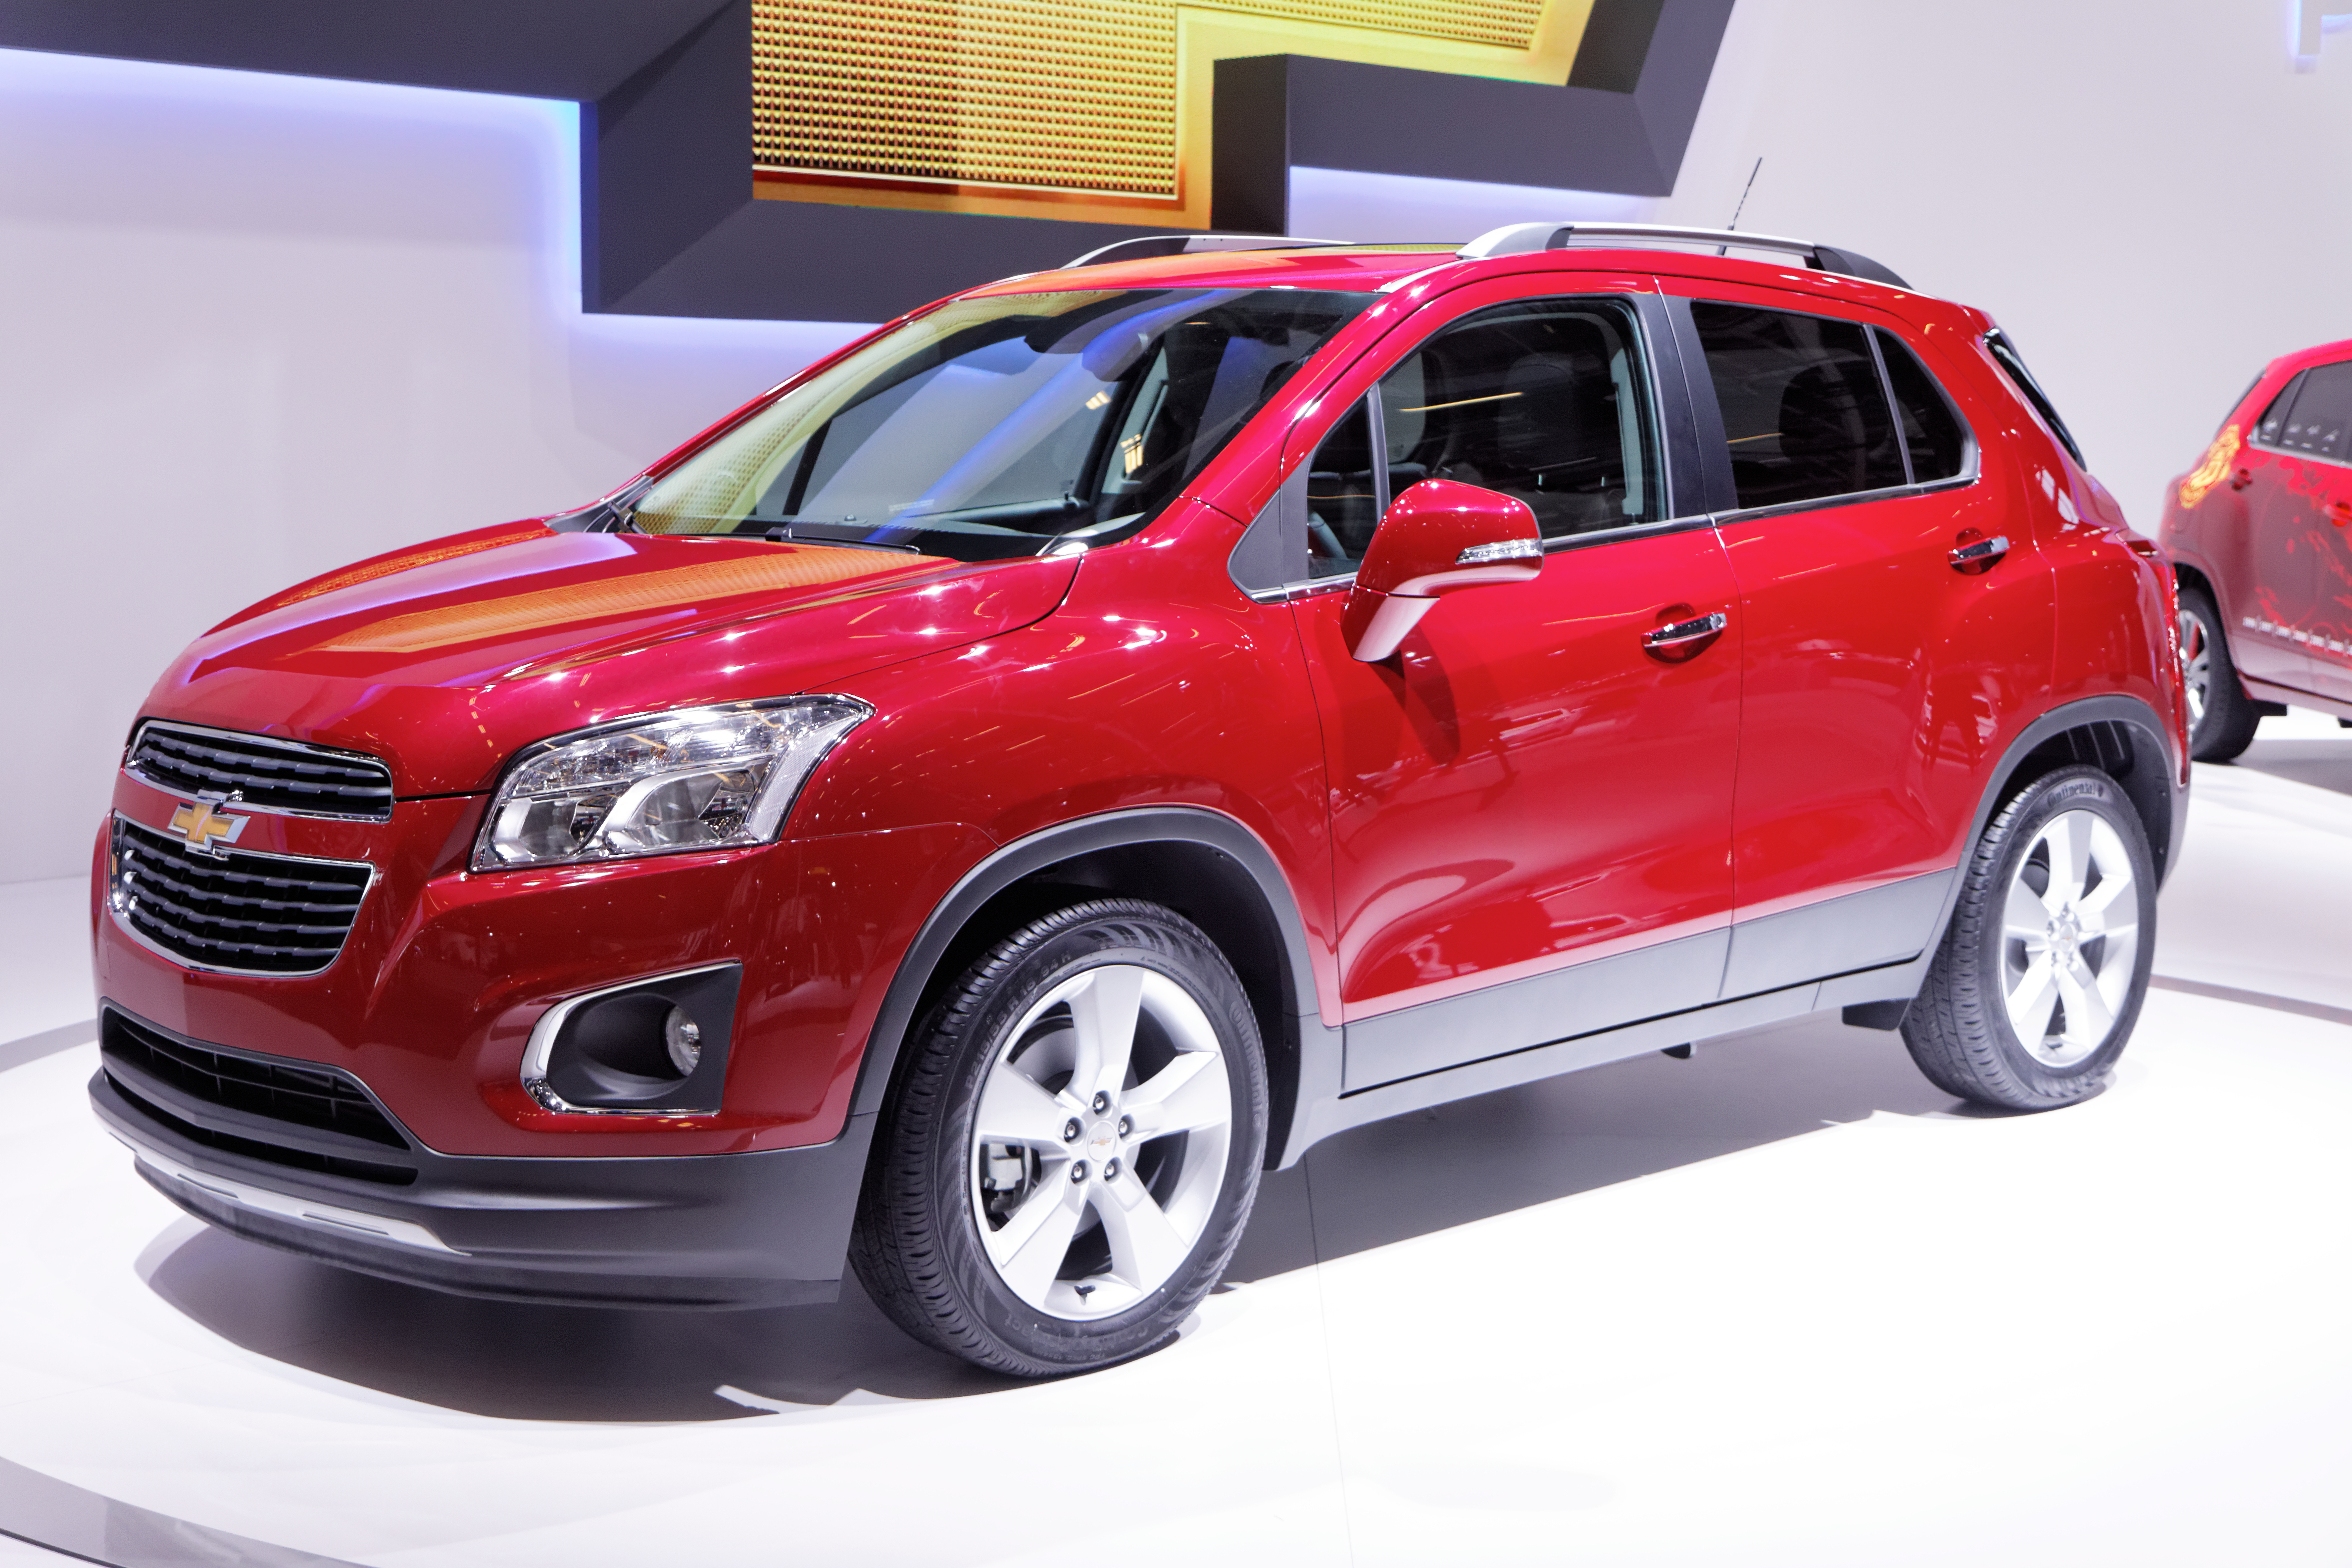 Depiction of Chevrolet Trax